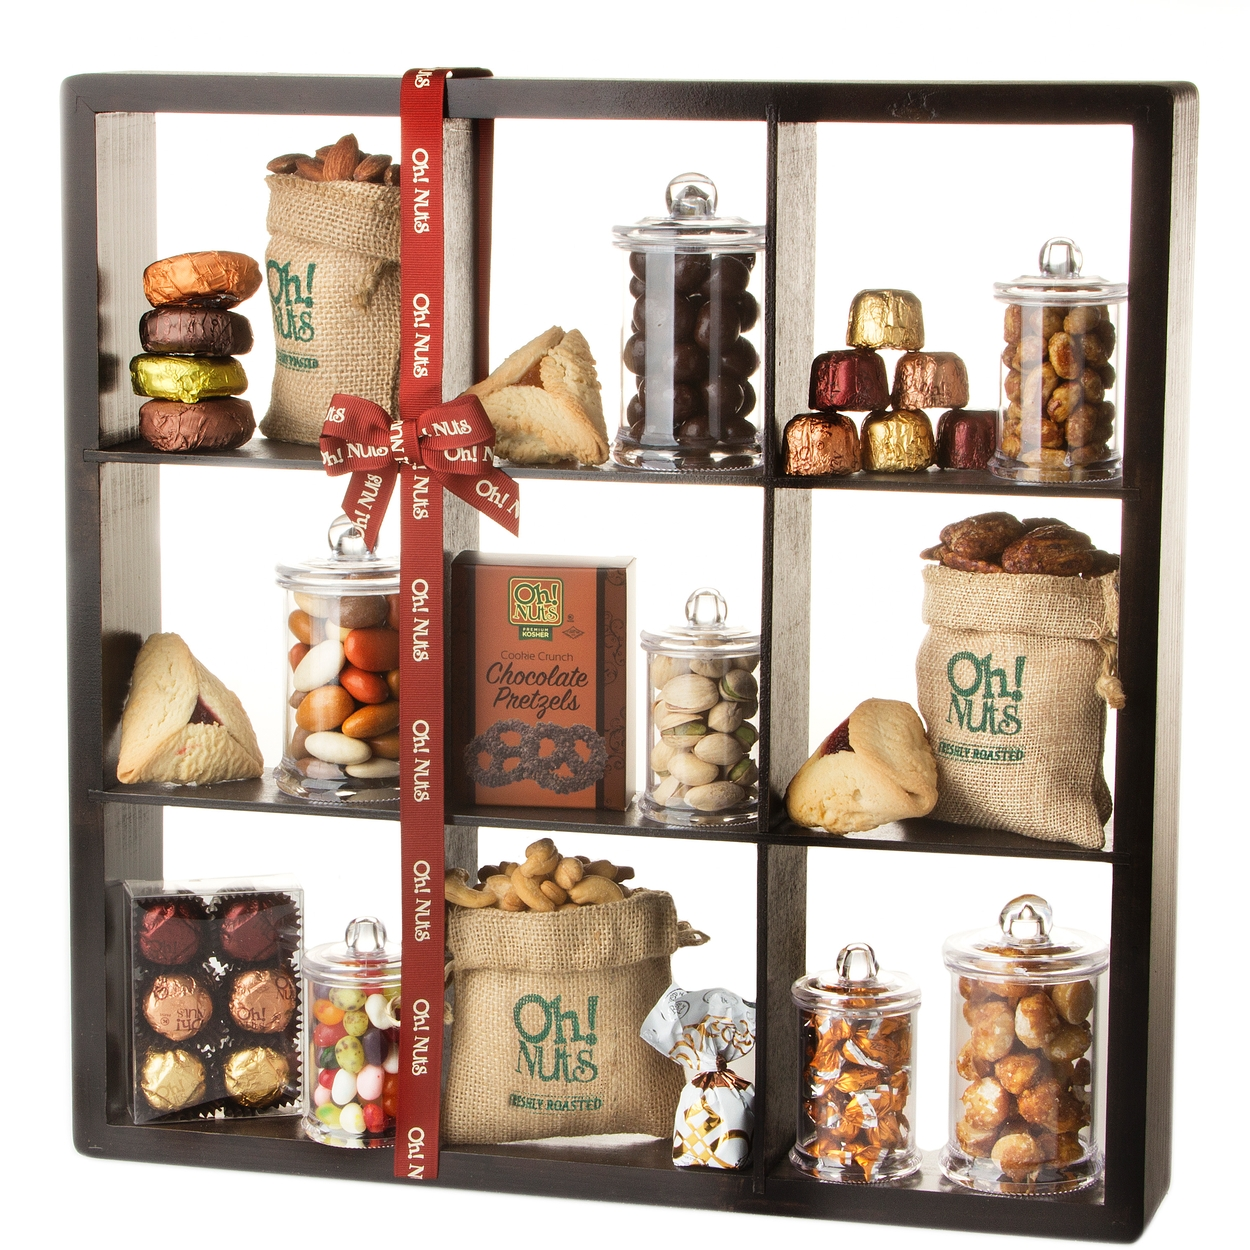 purim shalach manos well appointed 9 shelf display gift